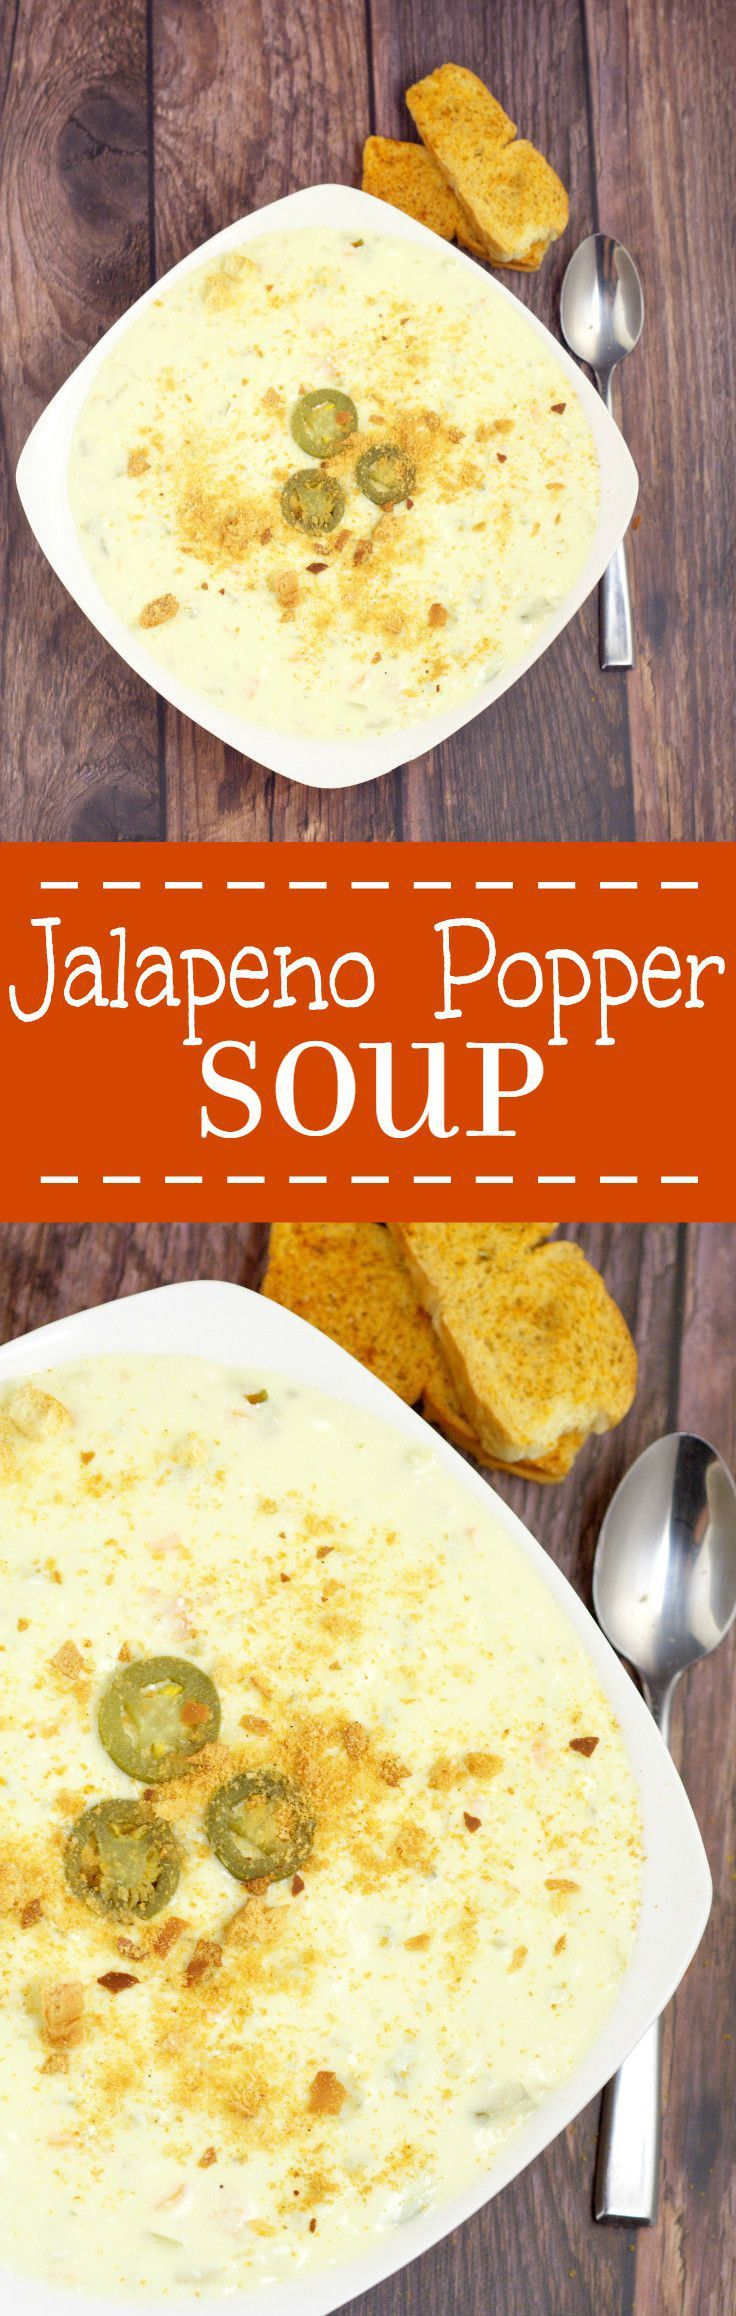 Creamy and warm with a kick of spicy, this Jalapeno Popper Soup recipe makes eating appetizers for dinner totally okay! Tastes